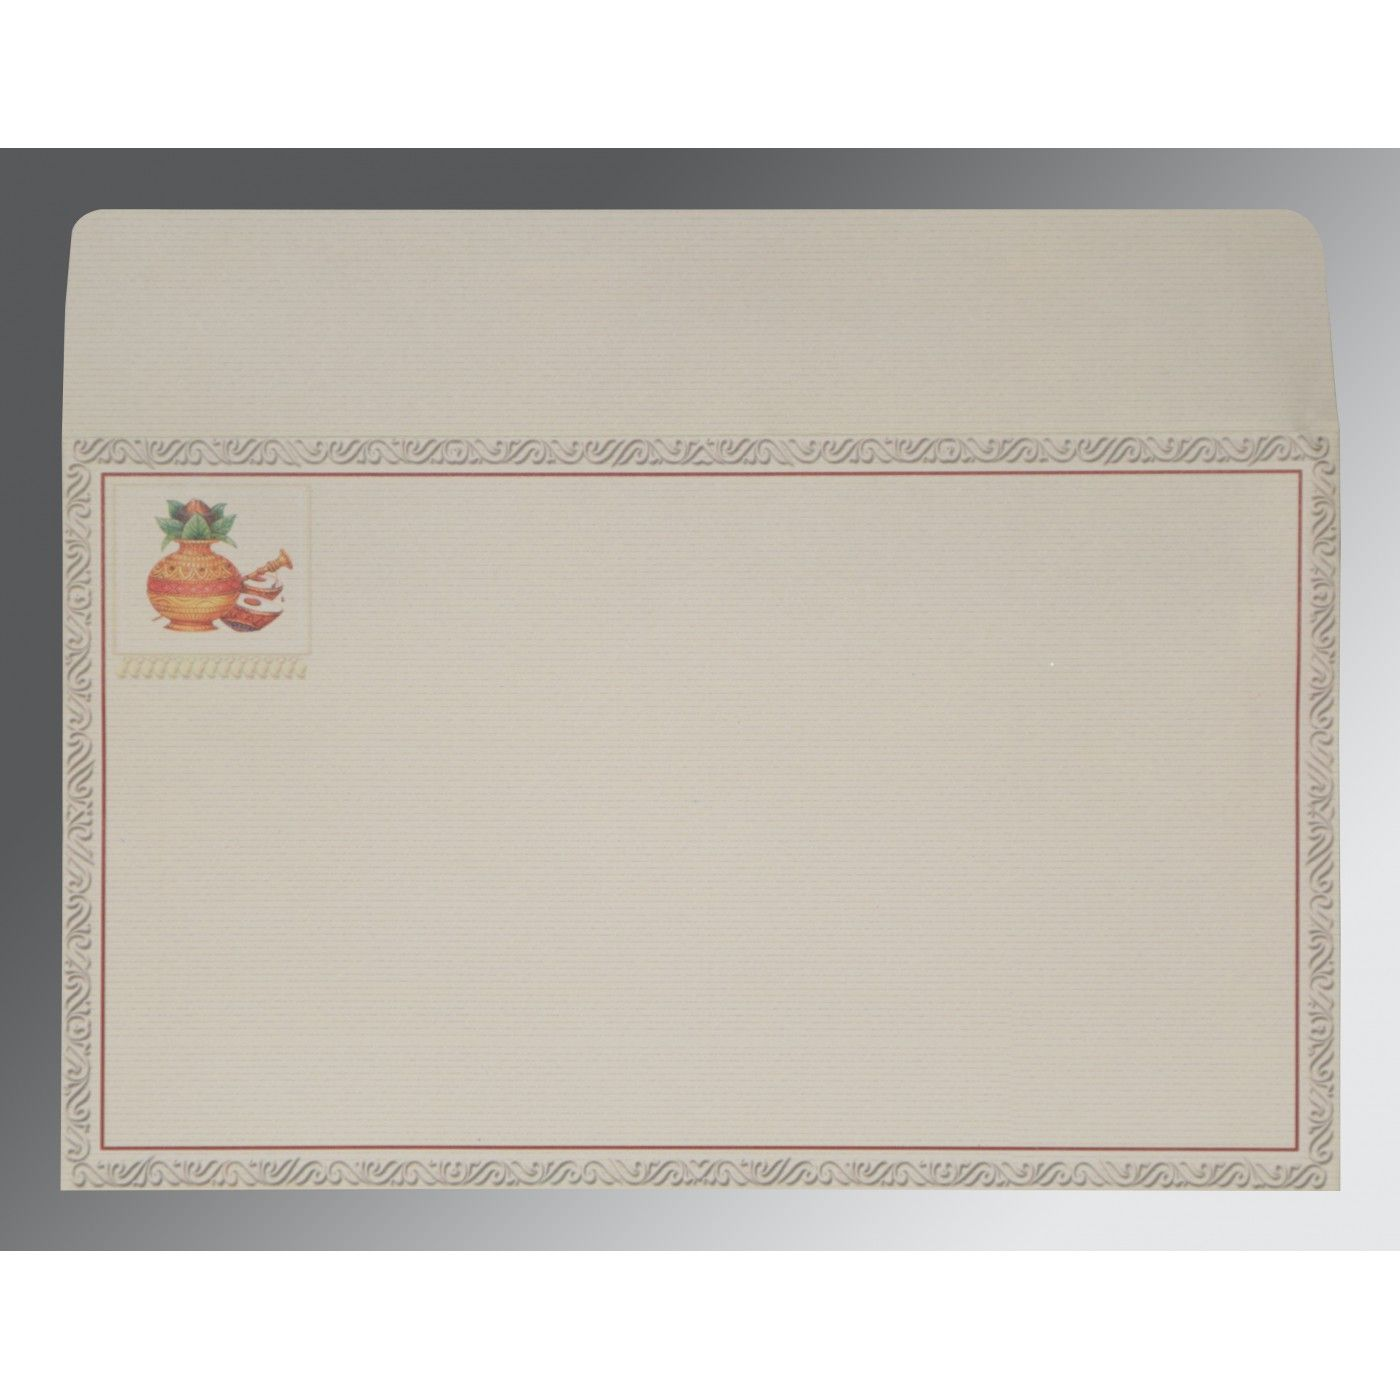 OFF-WHITE MATTE EMBOSSED WEDDING CARD : CW-2077 - IndianWeddingCards